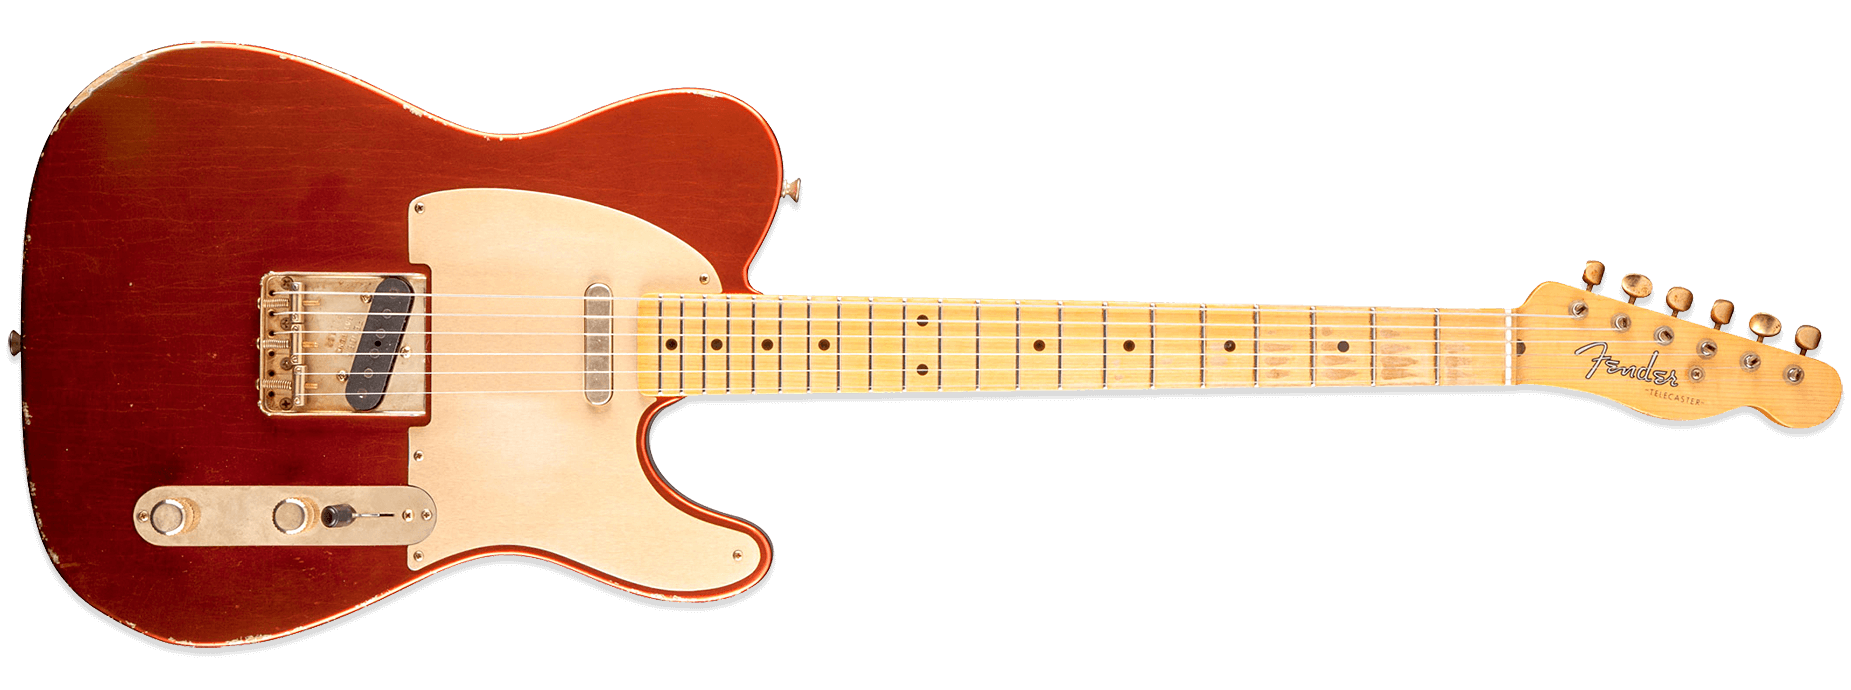 Fender Custom Shop 1952 Telecaster Relic